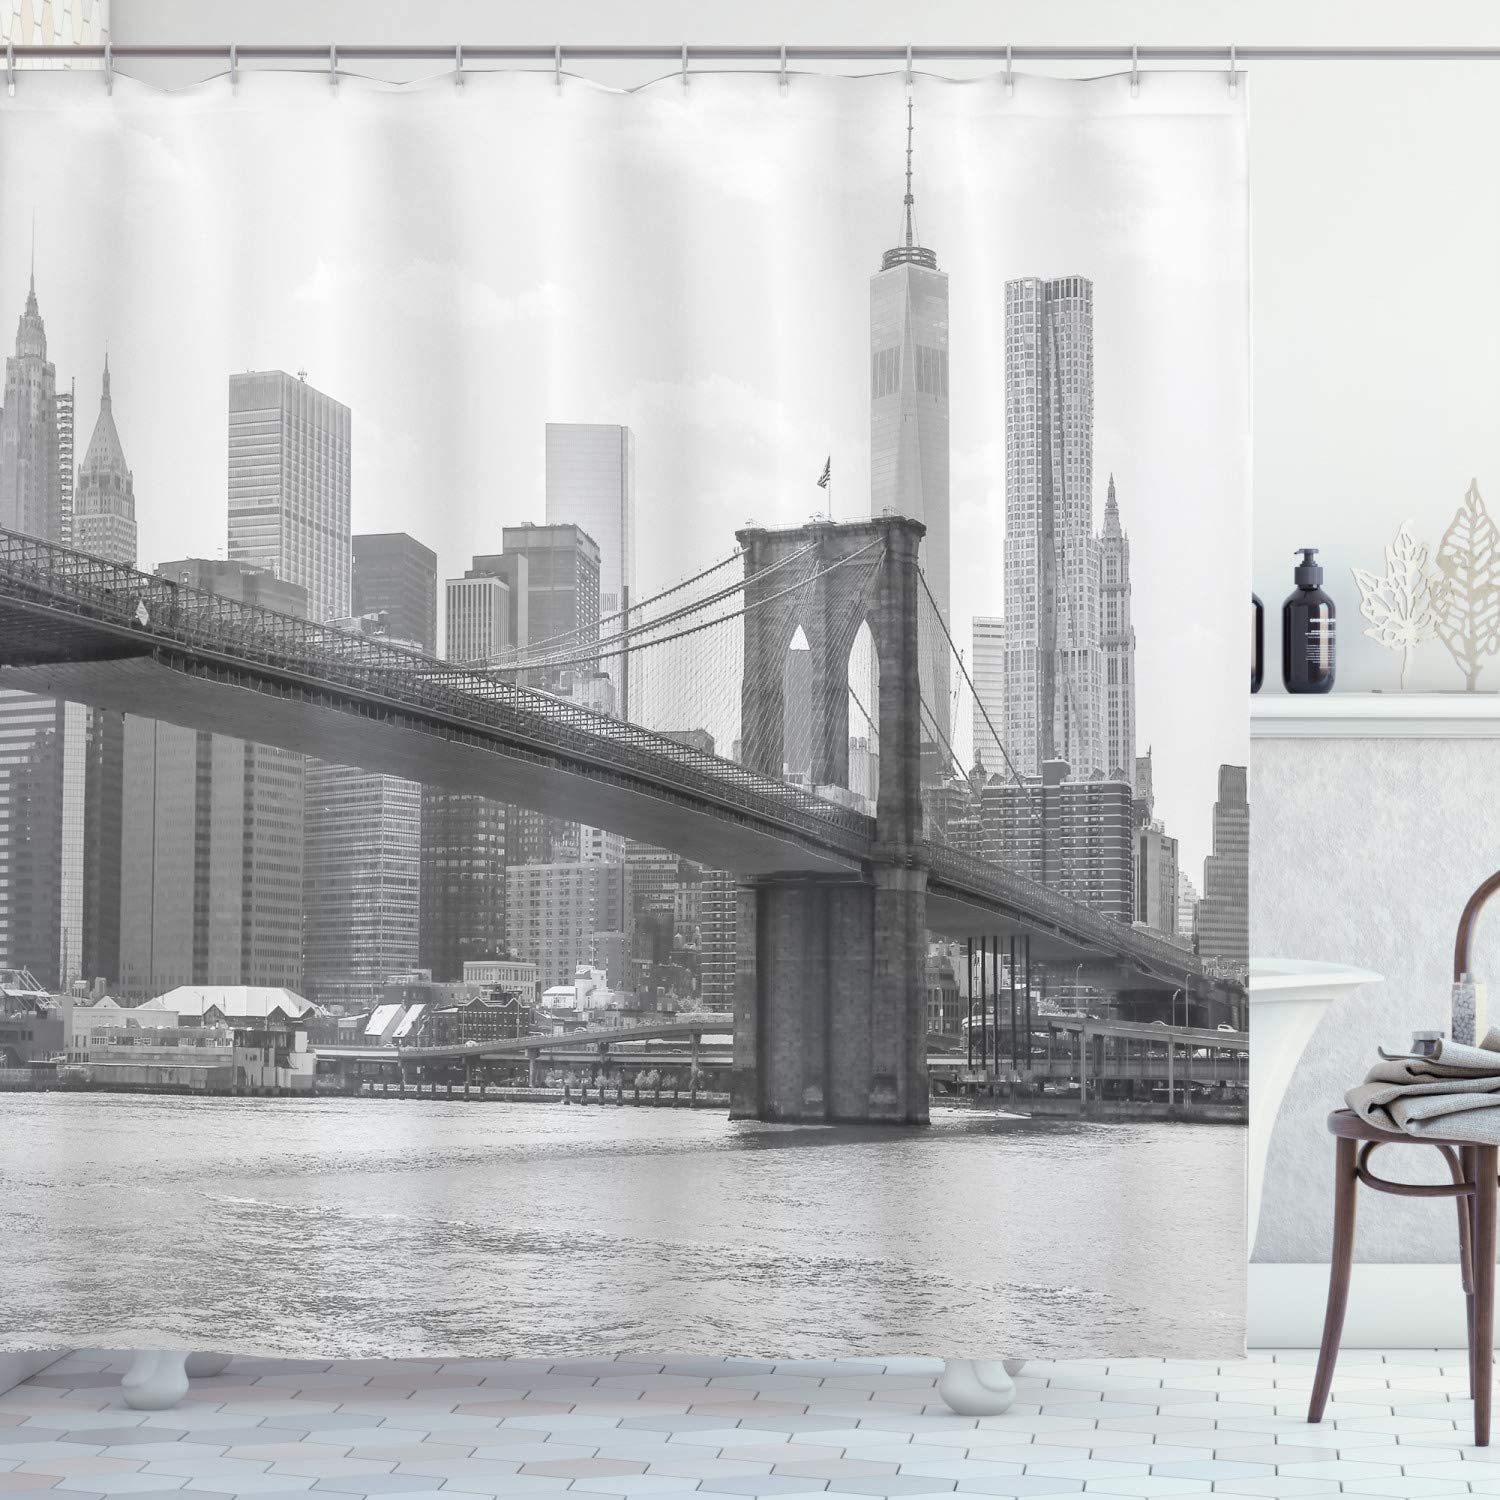 """Ambesonne Landscape Shower Curtain, Photo of Brooklyn Bridge Over East River and Tall Buildings Skylines at The Back, Cloth Fabric Bathroom Decor Set with Hooks, 75"""" Long, Gray White"""